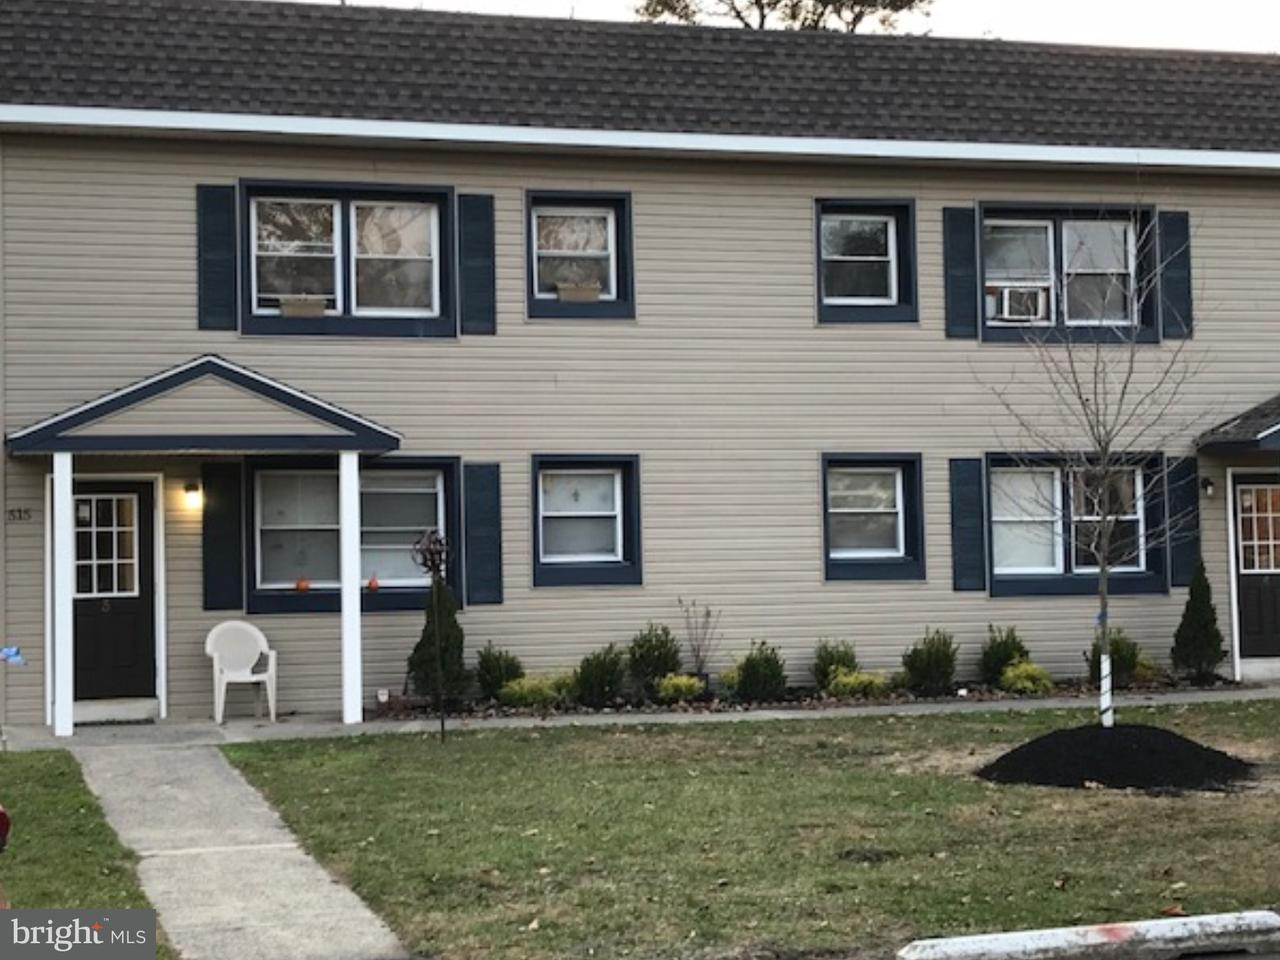 Single Family Home for Rent at 515 SURREY AVE #1B Berlin, New Jersey 08009 United States